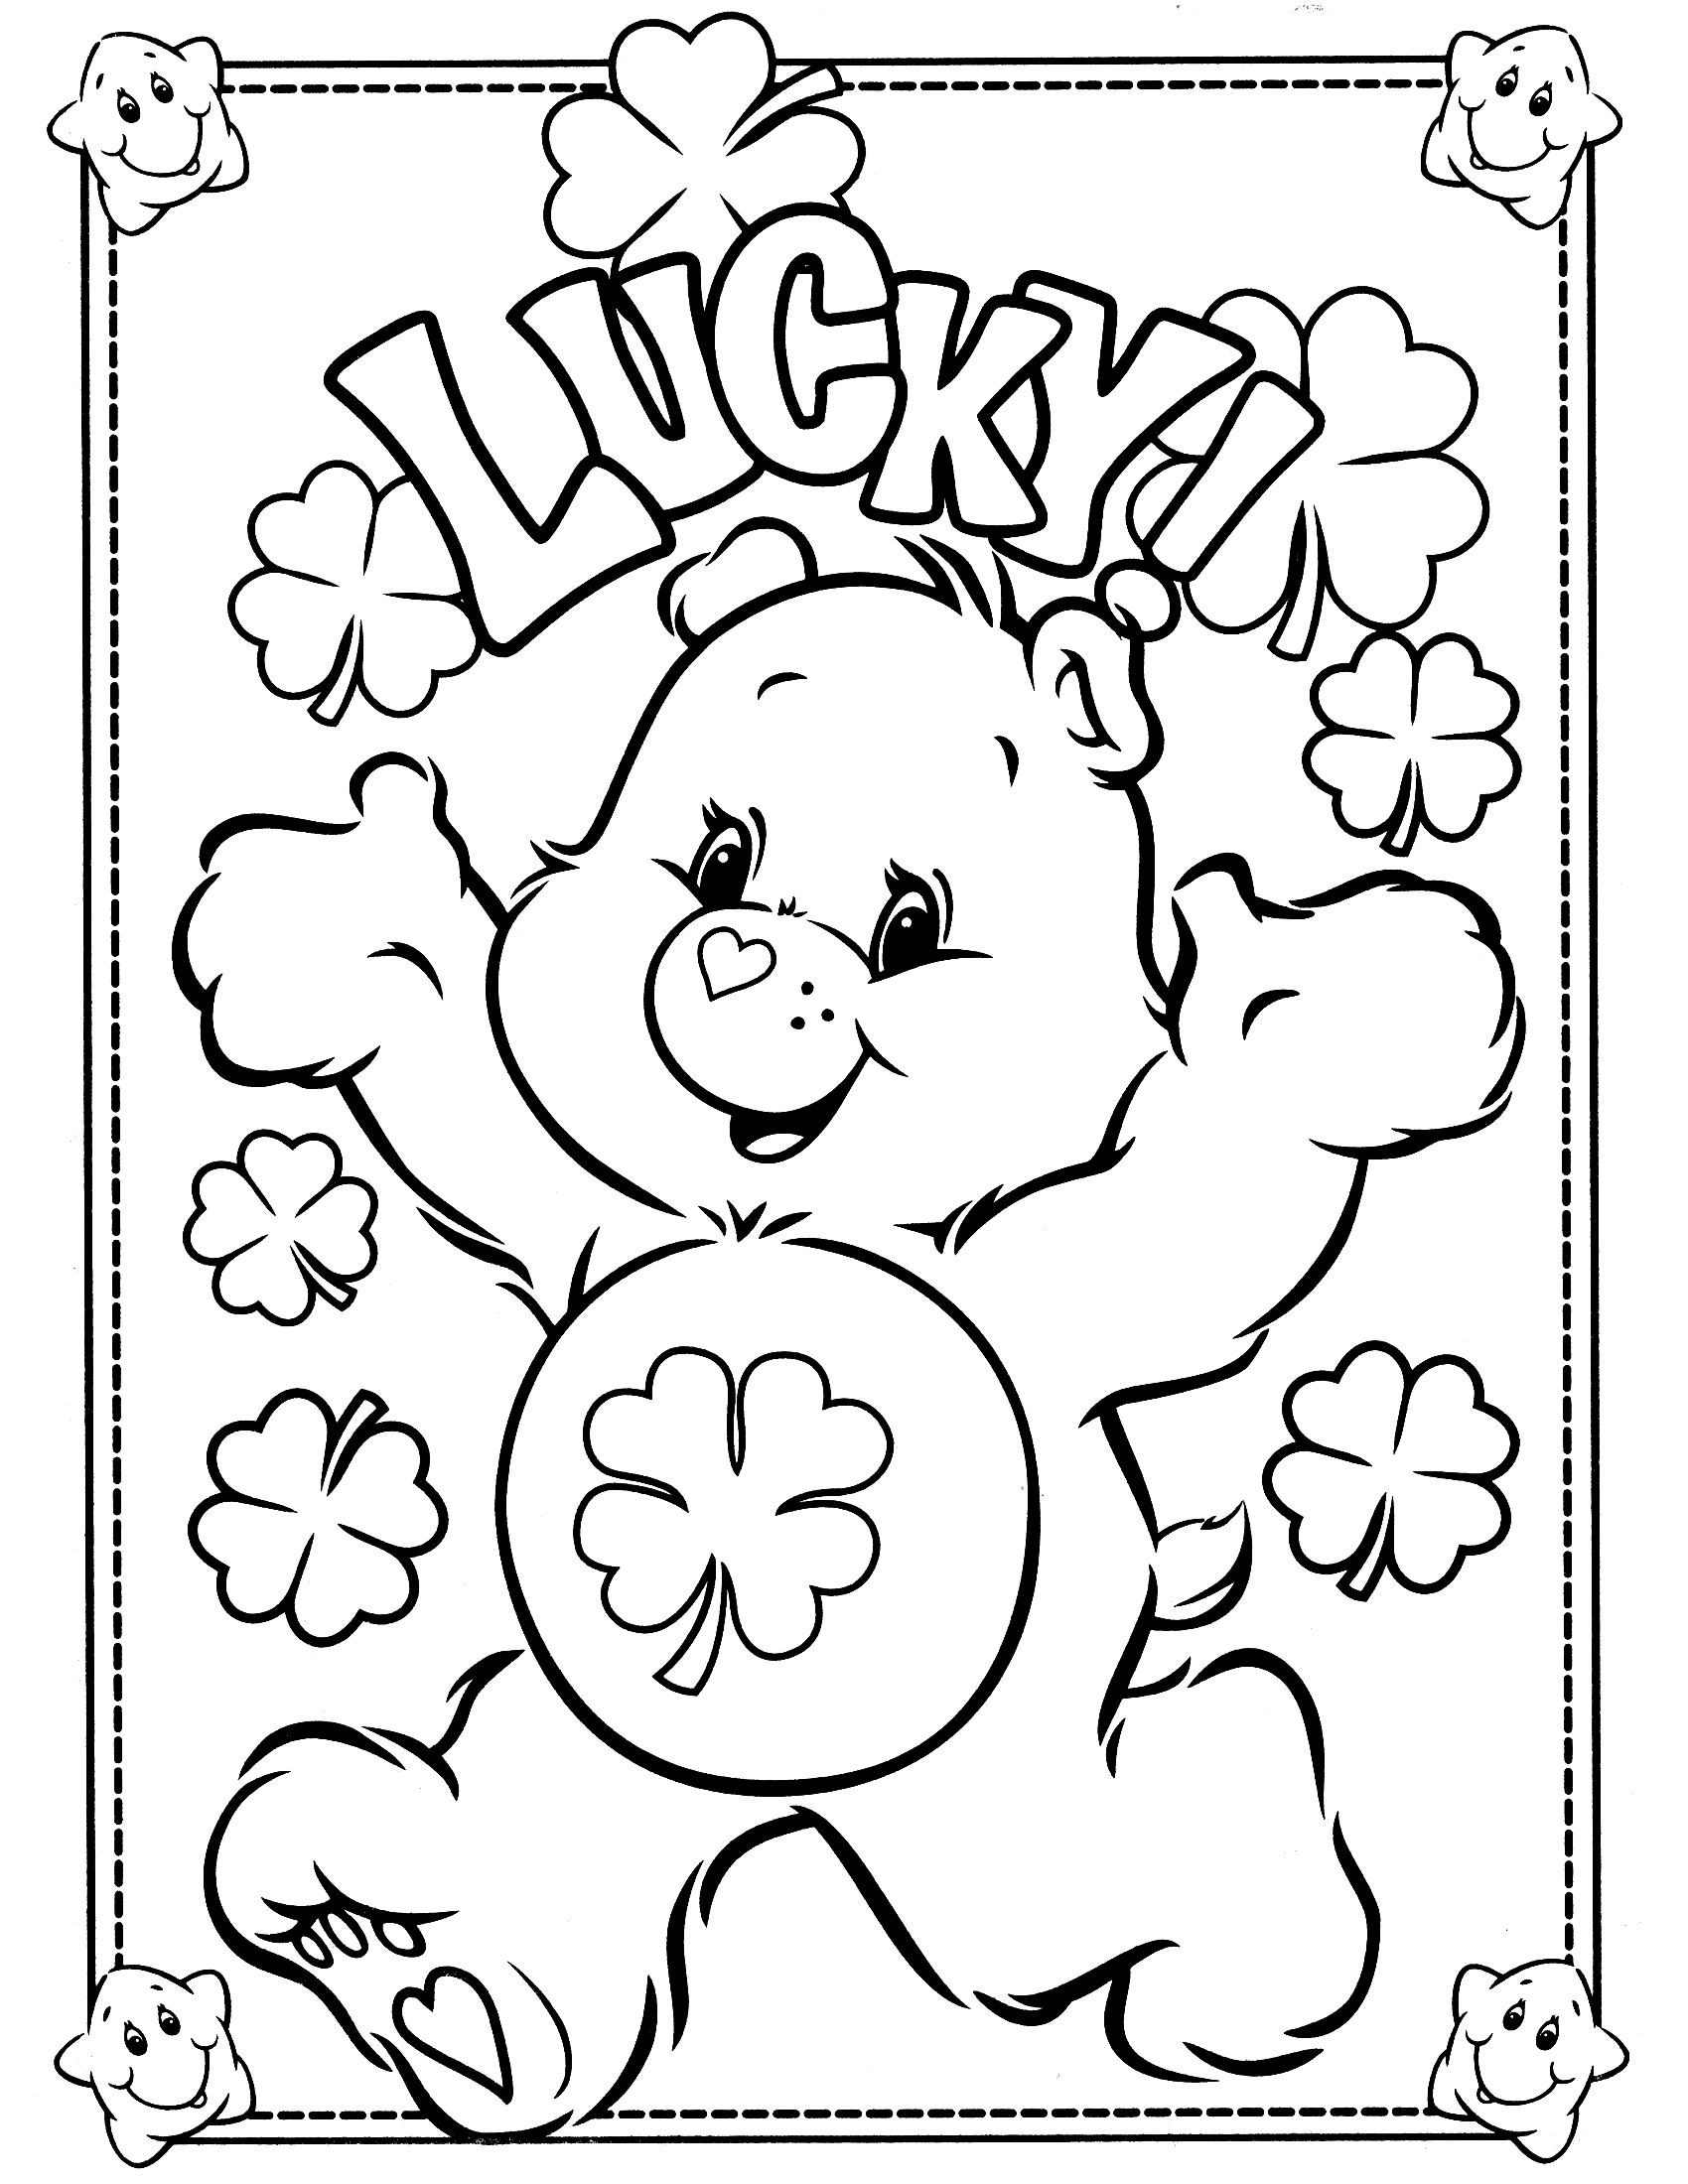 Free printable care bear coloring pages for kids for Coloring pages t